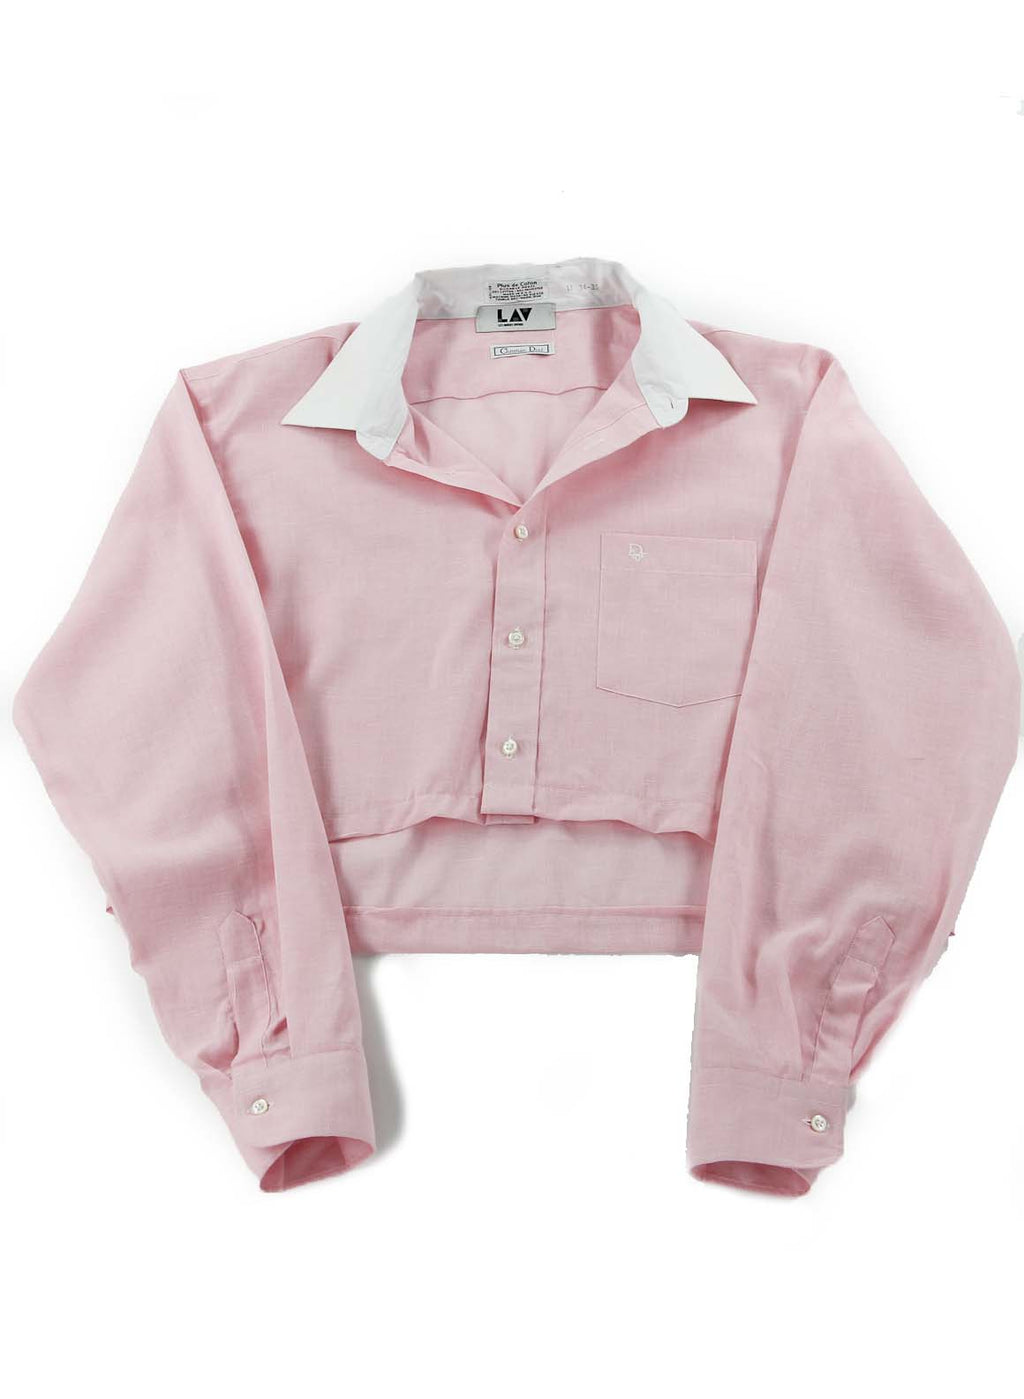 Christian Dior Baby Pink Cropped Shirt